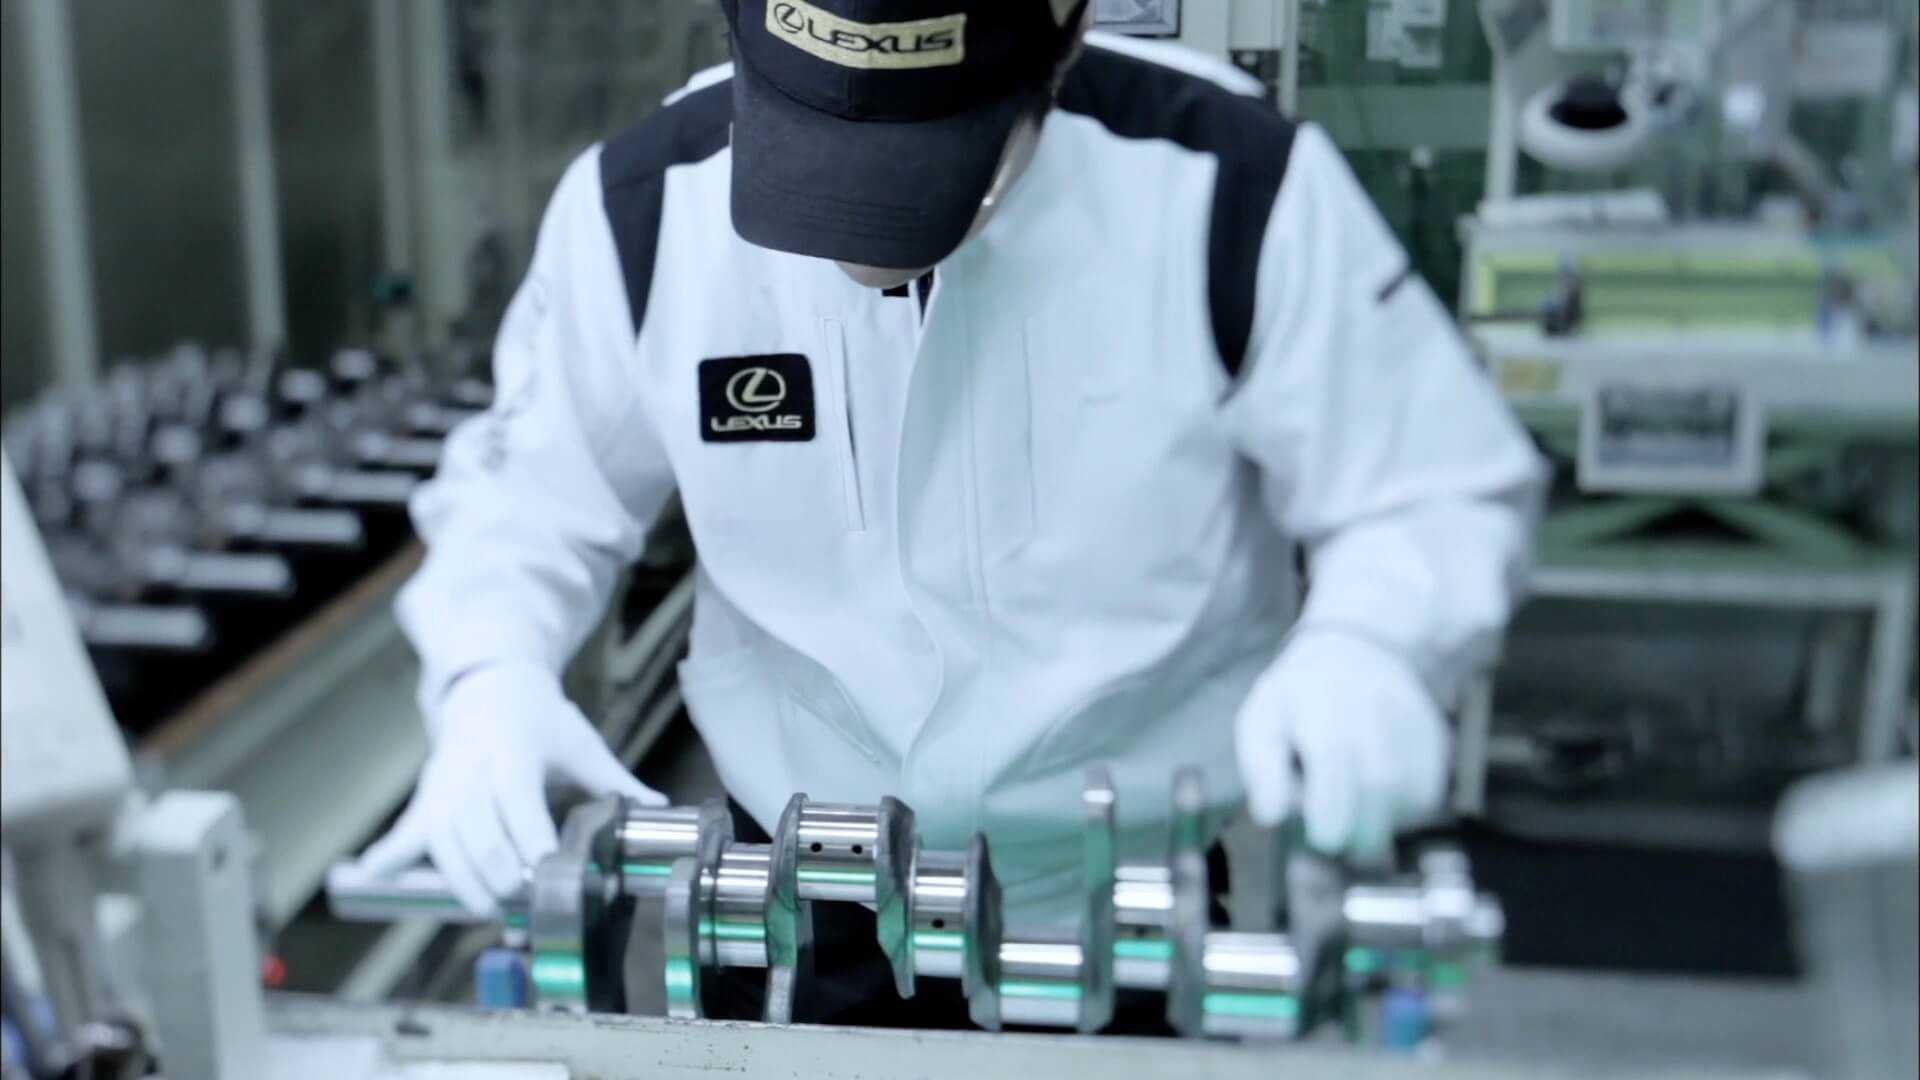 Lexus To Launch Crazy 60,000-Hour Video On How It Builds Cars